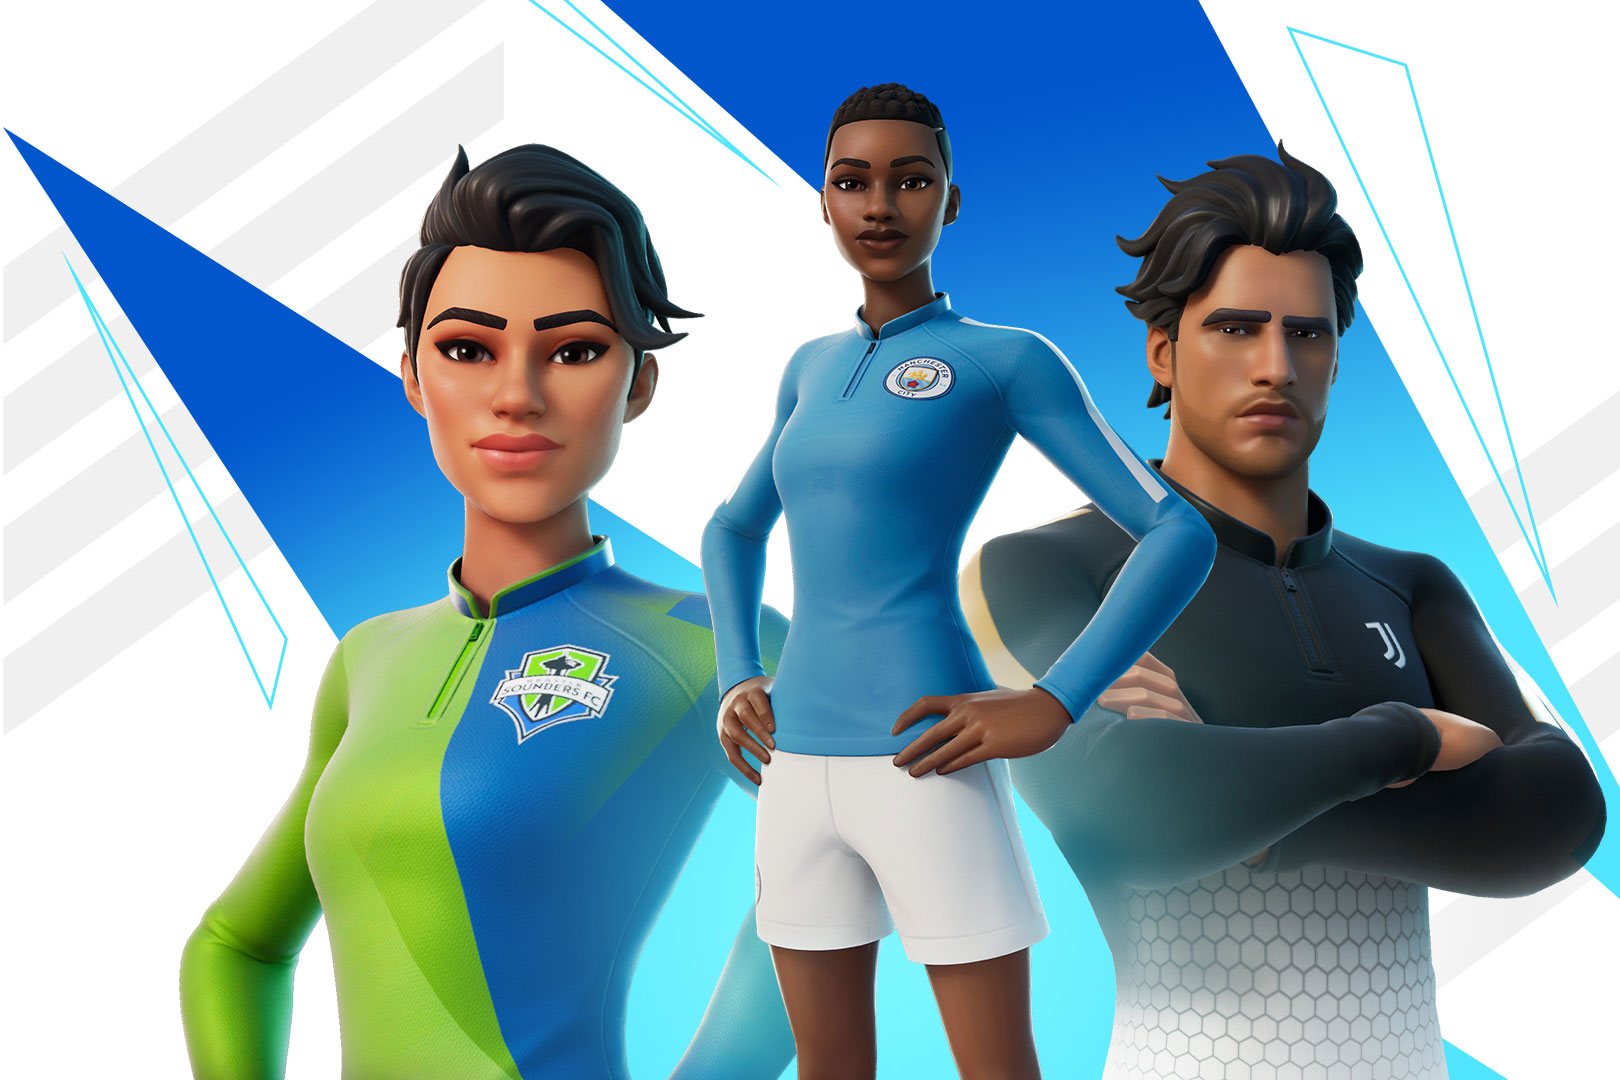 Fortnite kicks off largest sports partnership with 23 global soccer clubs